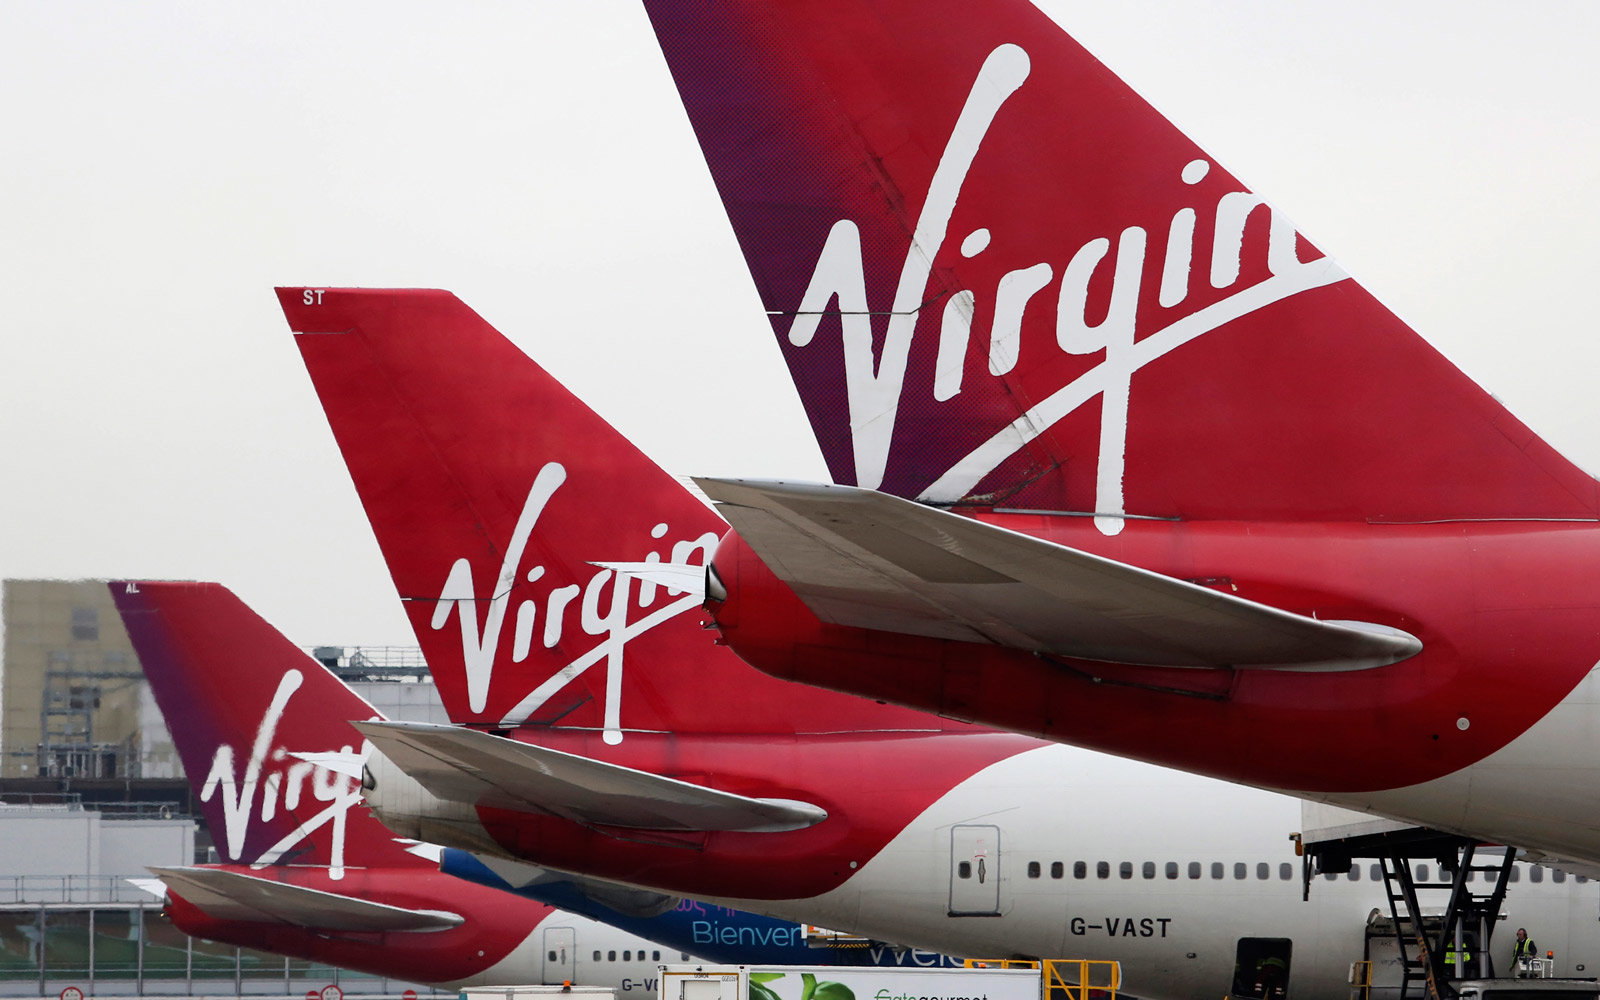 Virgin Atlantic Just Introduced Their Own Version of Basic